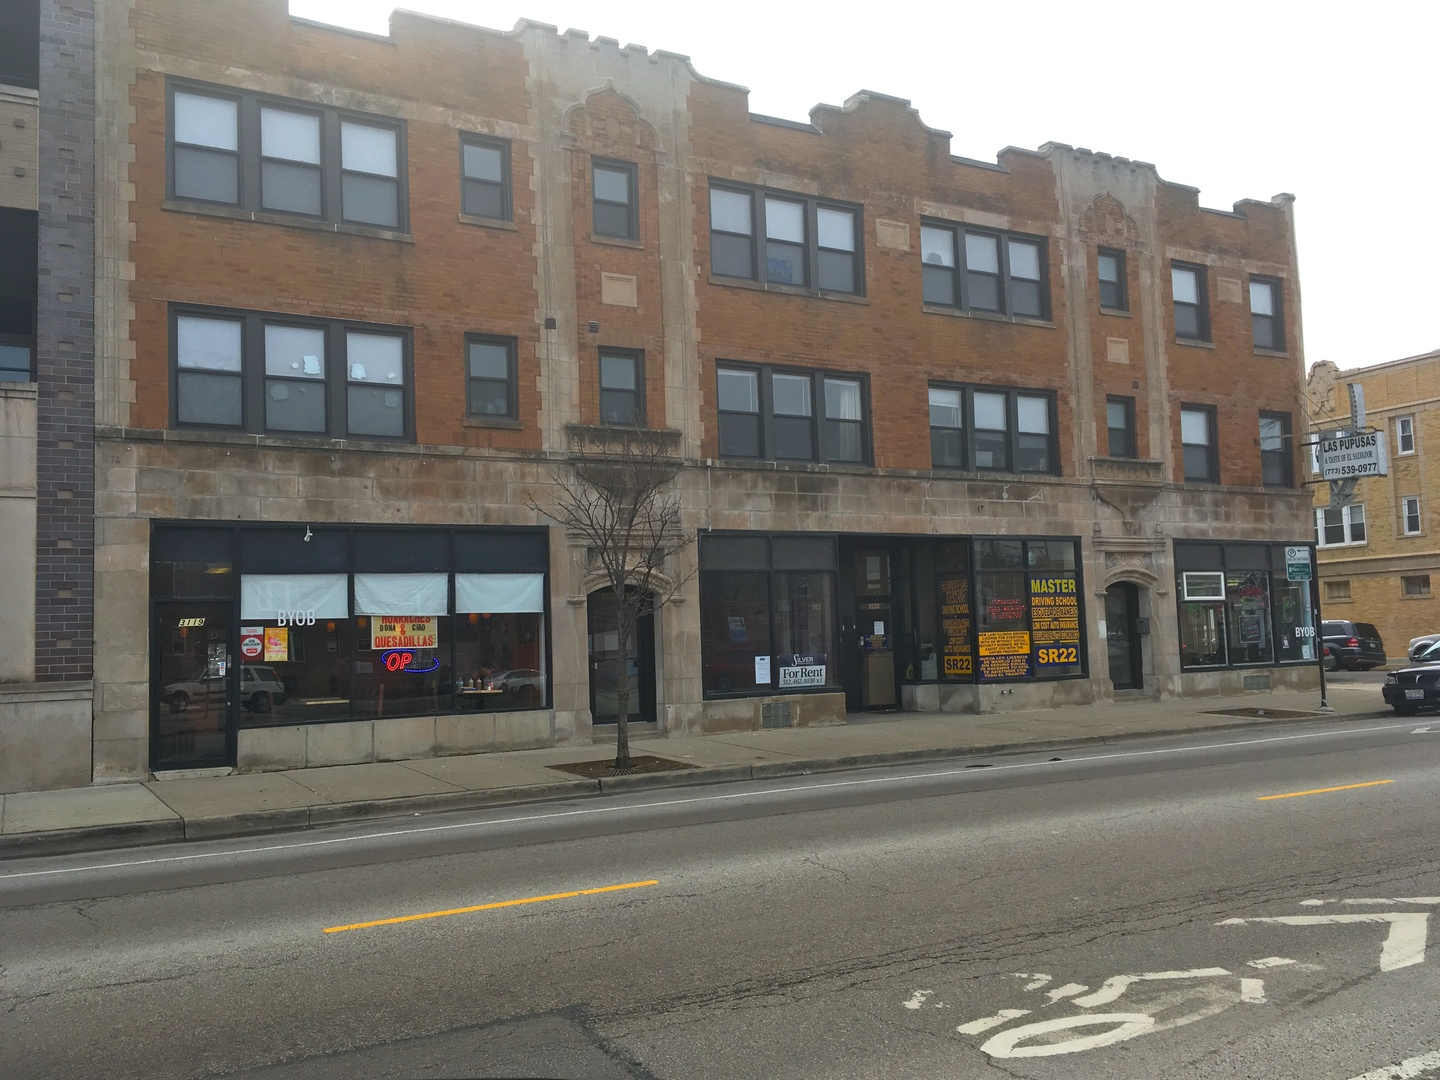 3121 Lawrence ,Chicago, Illinois 60625